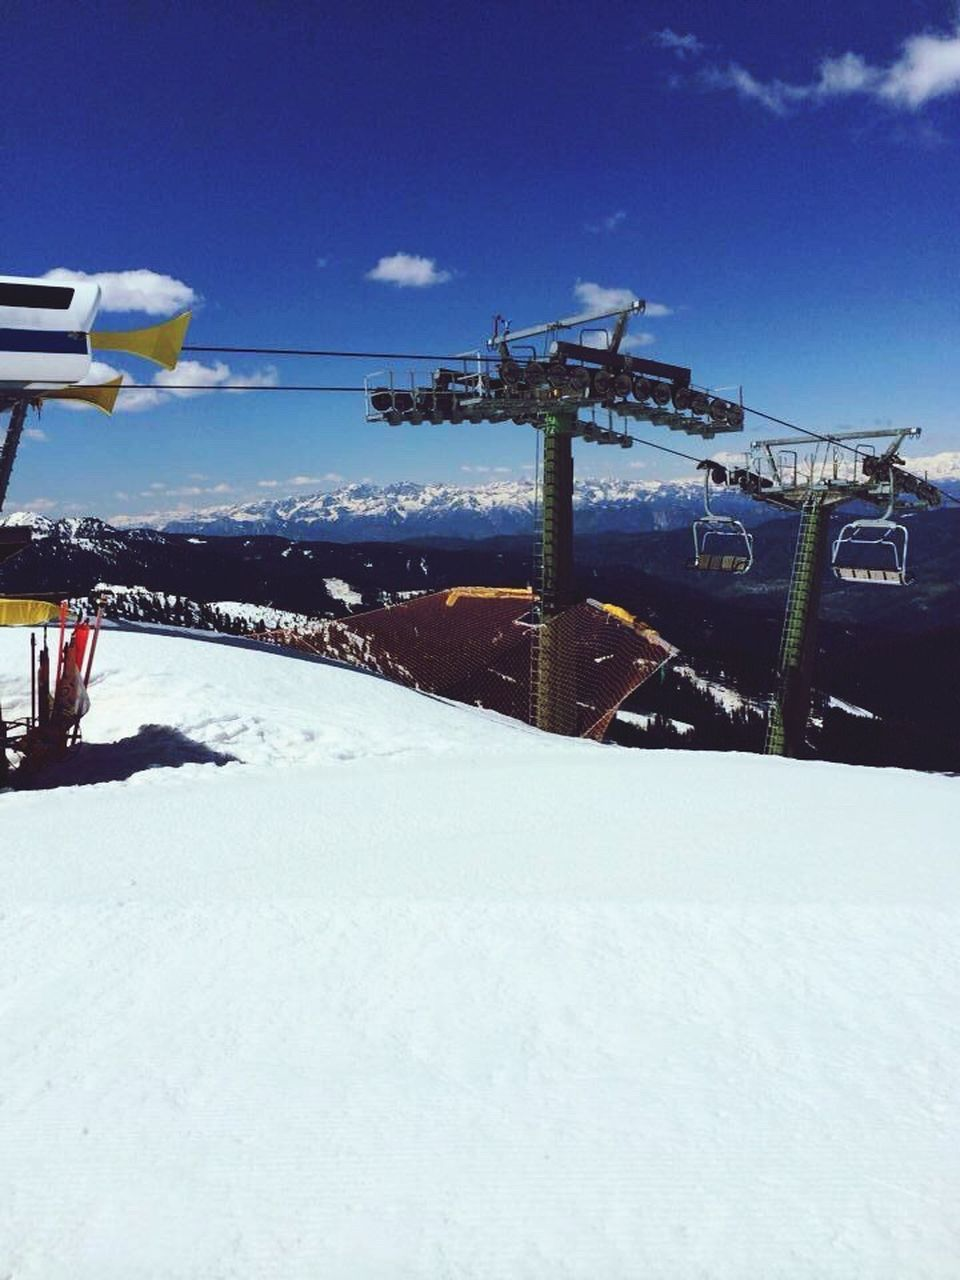 snow, winter, cold temperature, transportation, nature, no people, sky, day, mode of transportation, built structure, architecture, covering, travel, outdoors, white color, cloud - sky, construction industry, machinery, industry, ski resort, snowcapped mountain